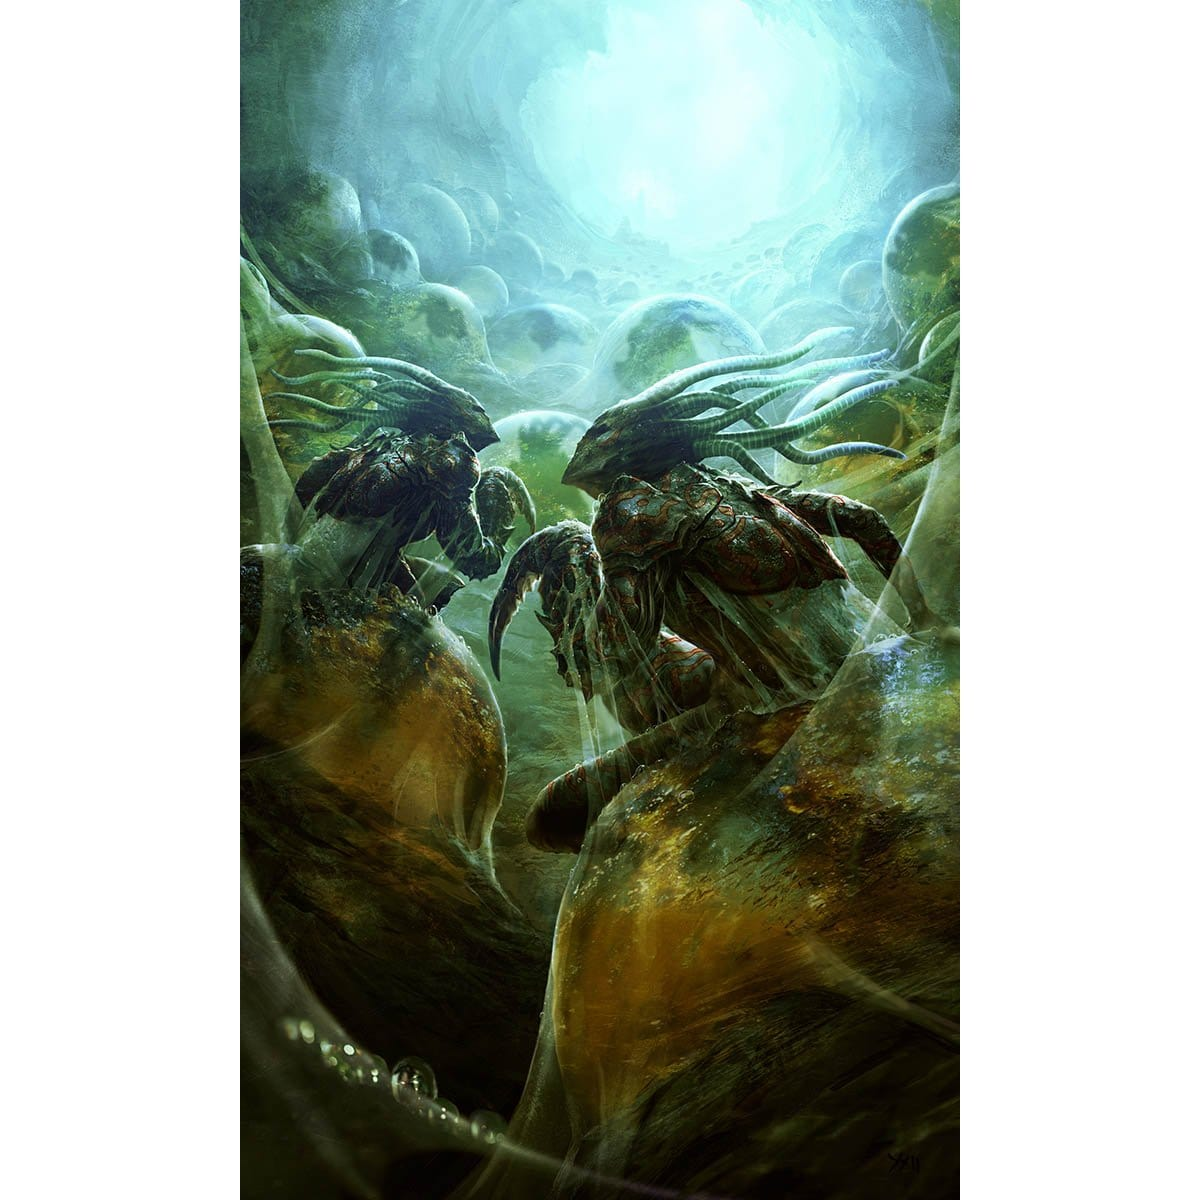 Hive Stirrings Print - Print - Original Magic Art - Accessories for Magic the Gathering and other card games